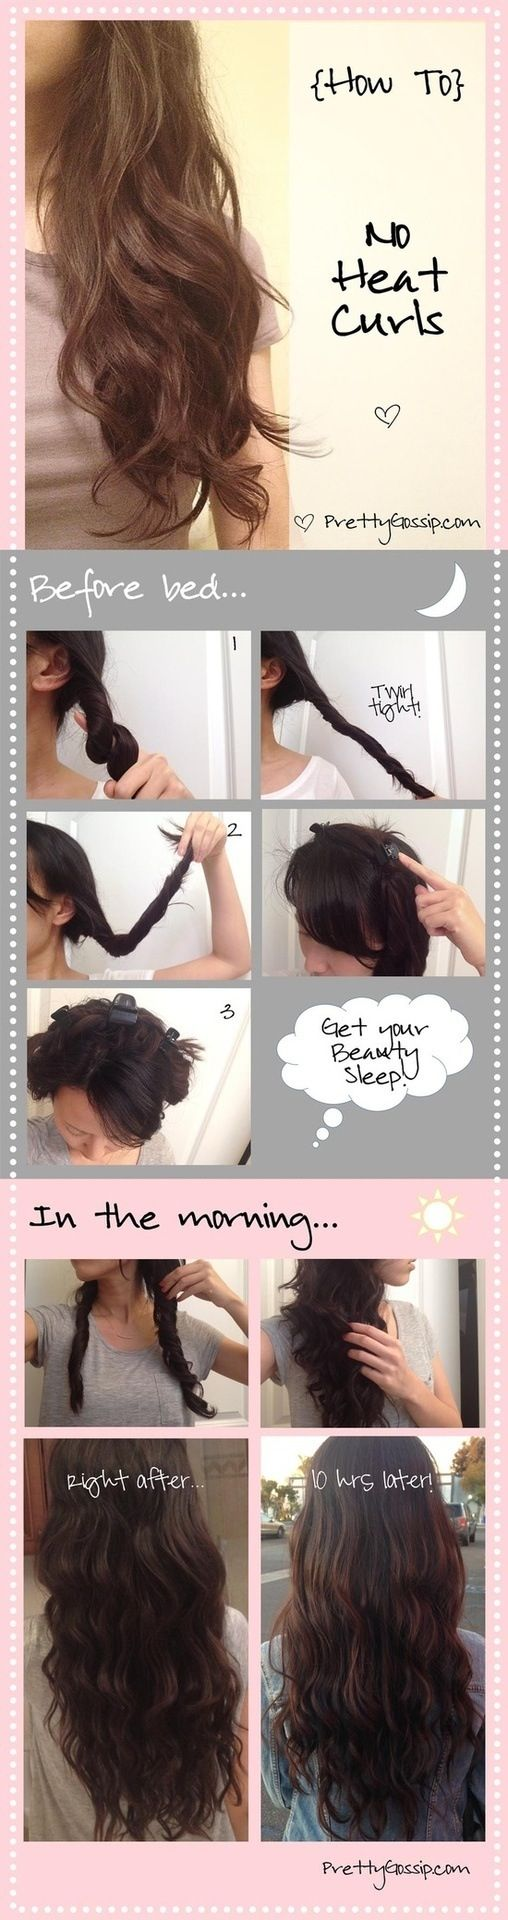 How-to-no-heat curls about